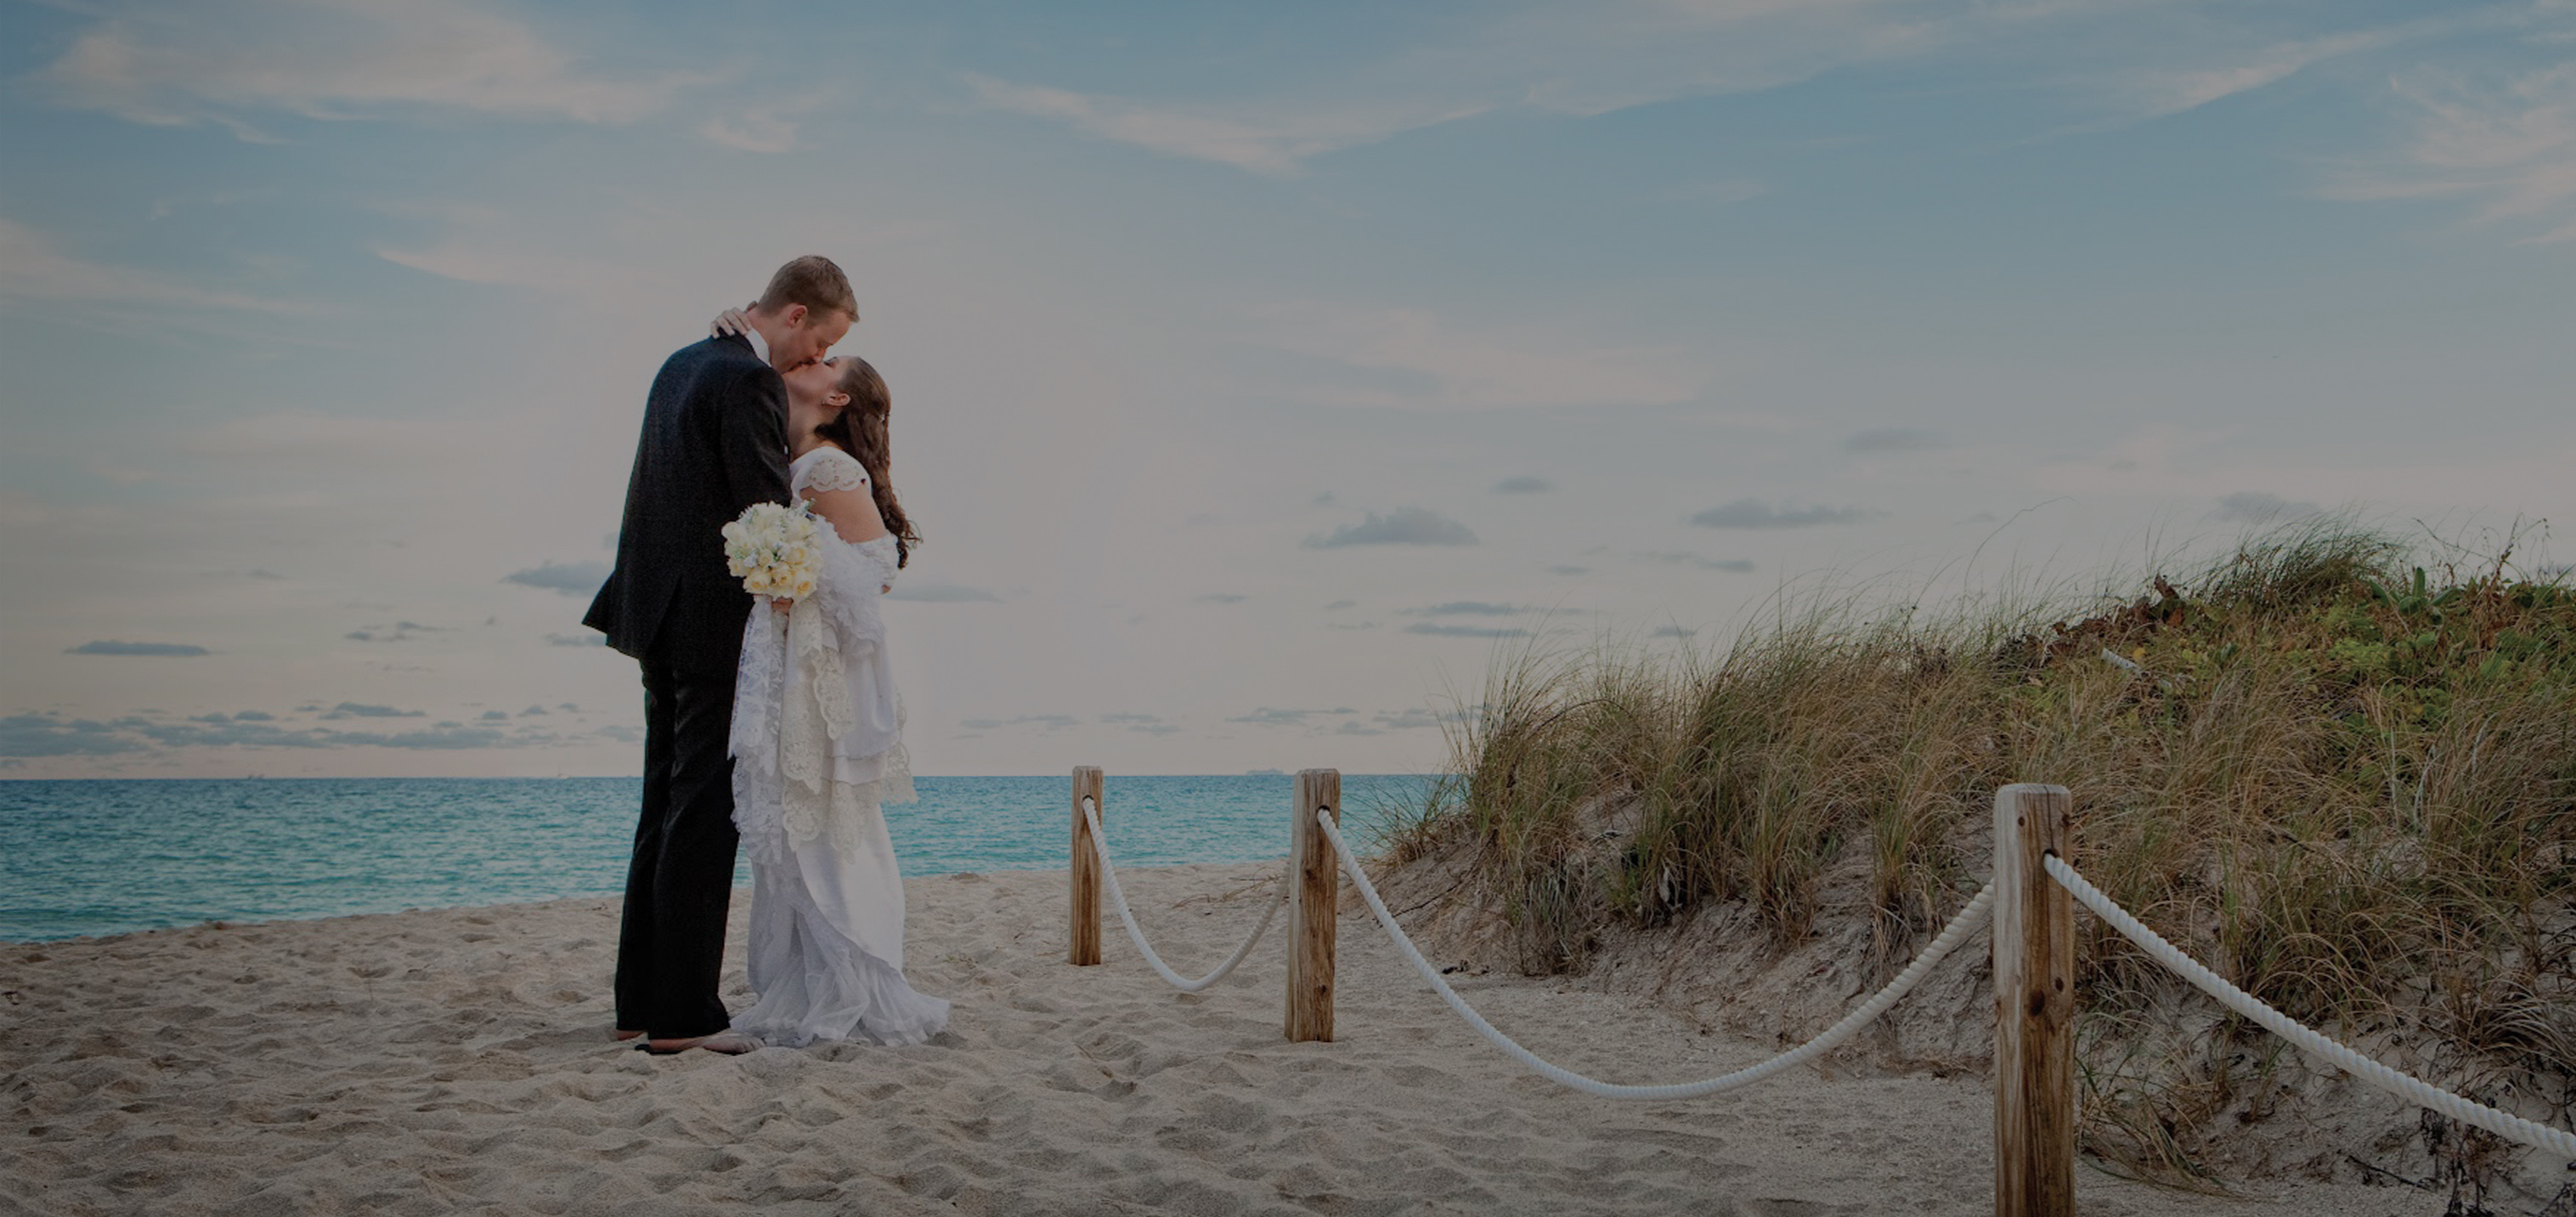 Wedding couple kissing at the beach in front of the Deauville Beach Resort